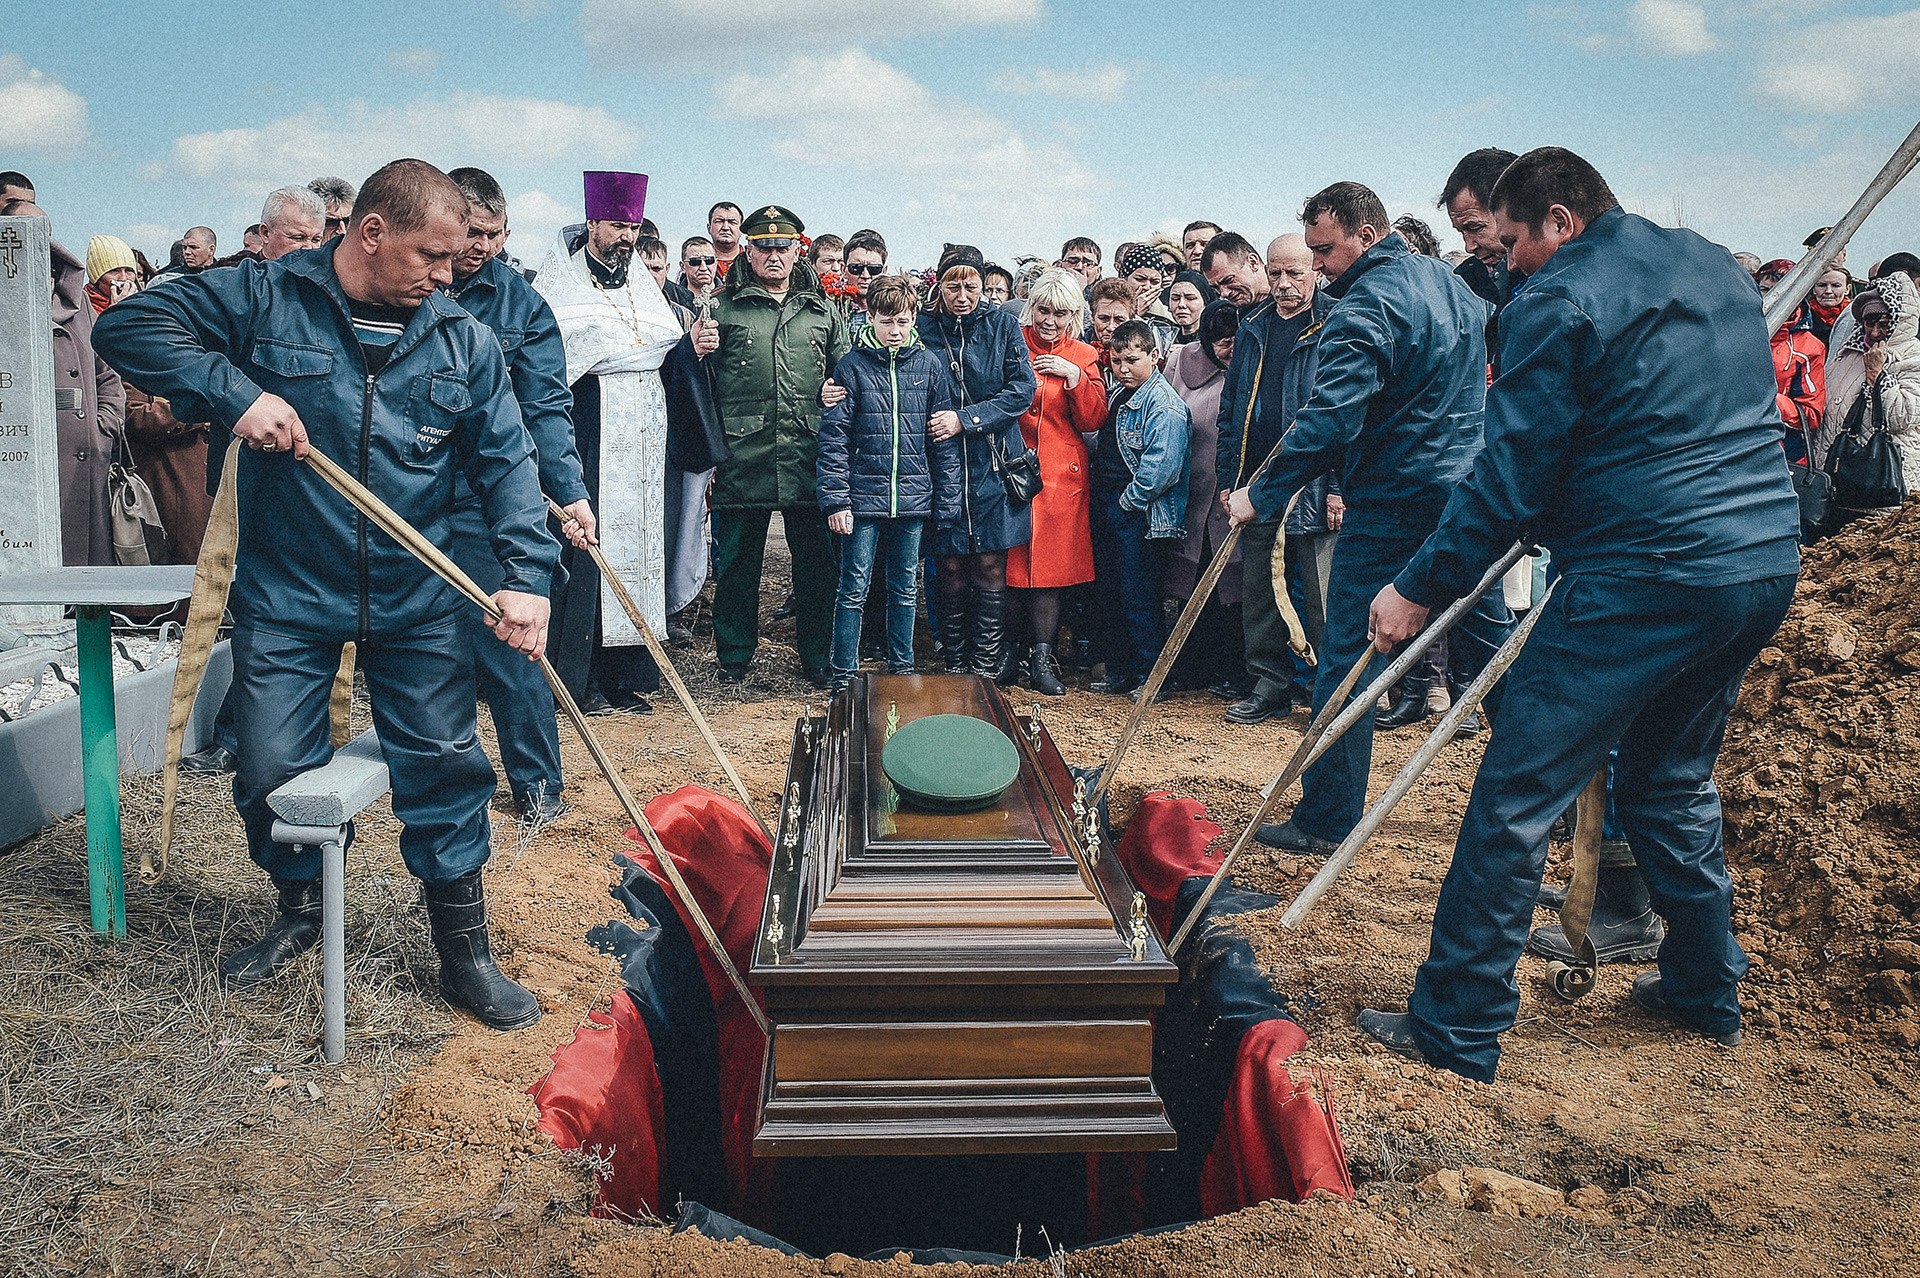 Burial of a military man